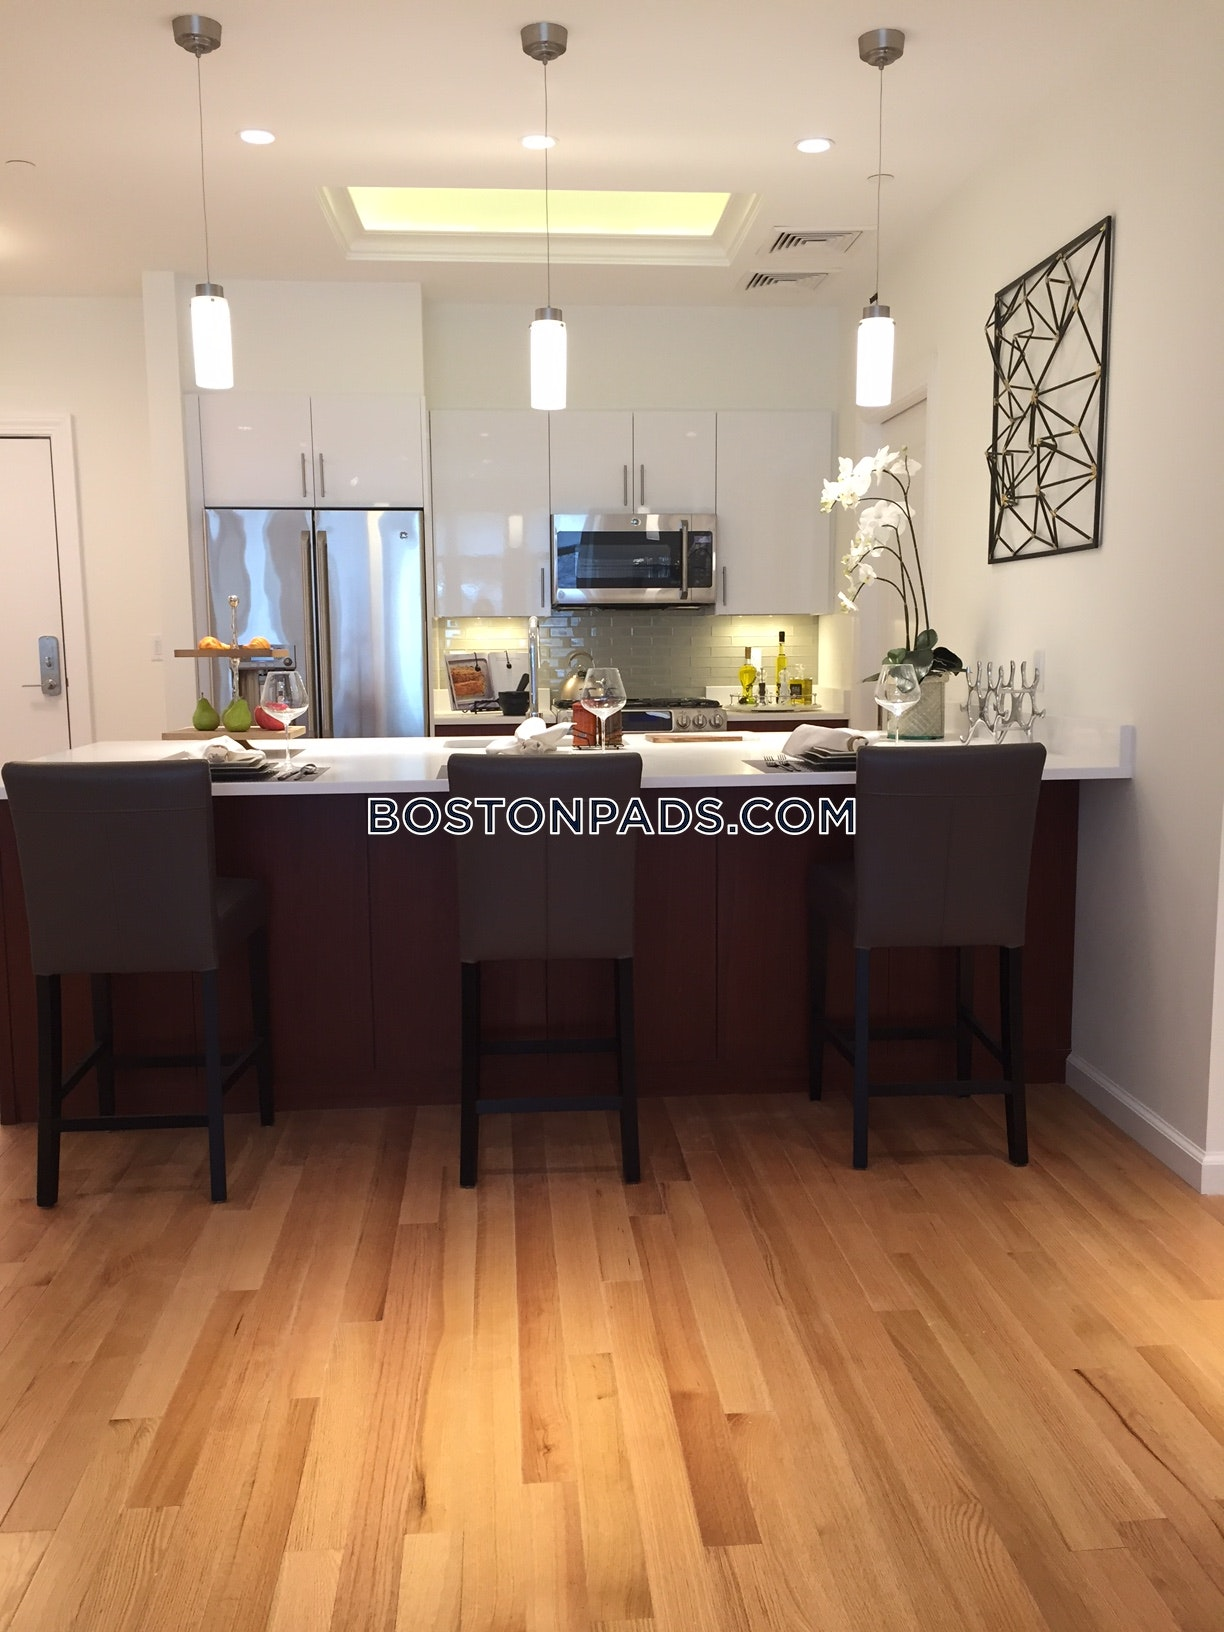 2 Beds 2.5 Baths - Brookline - Chestnut Hill $6,440 - Brookline - Chestnut Hill $6,440